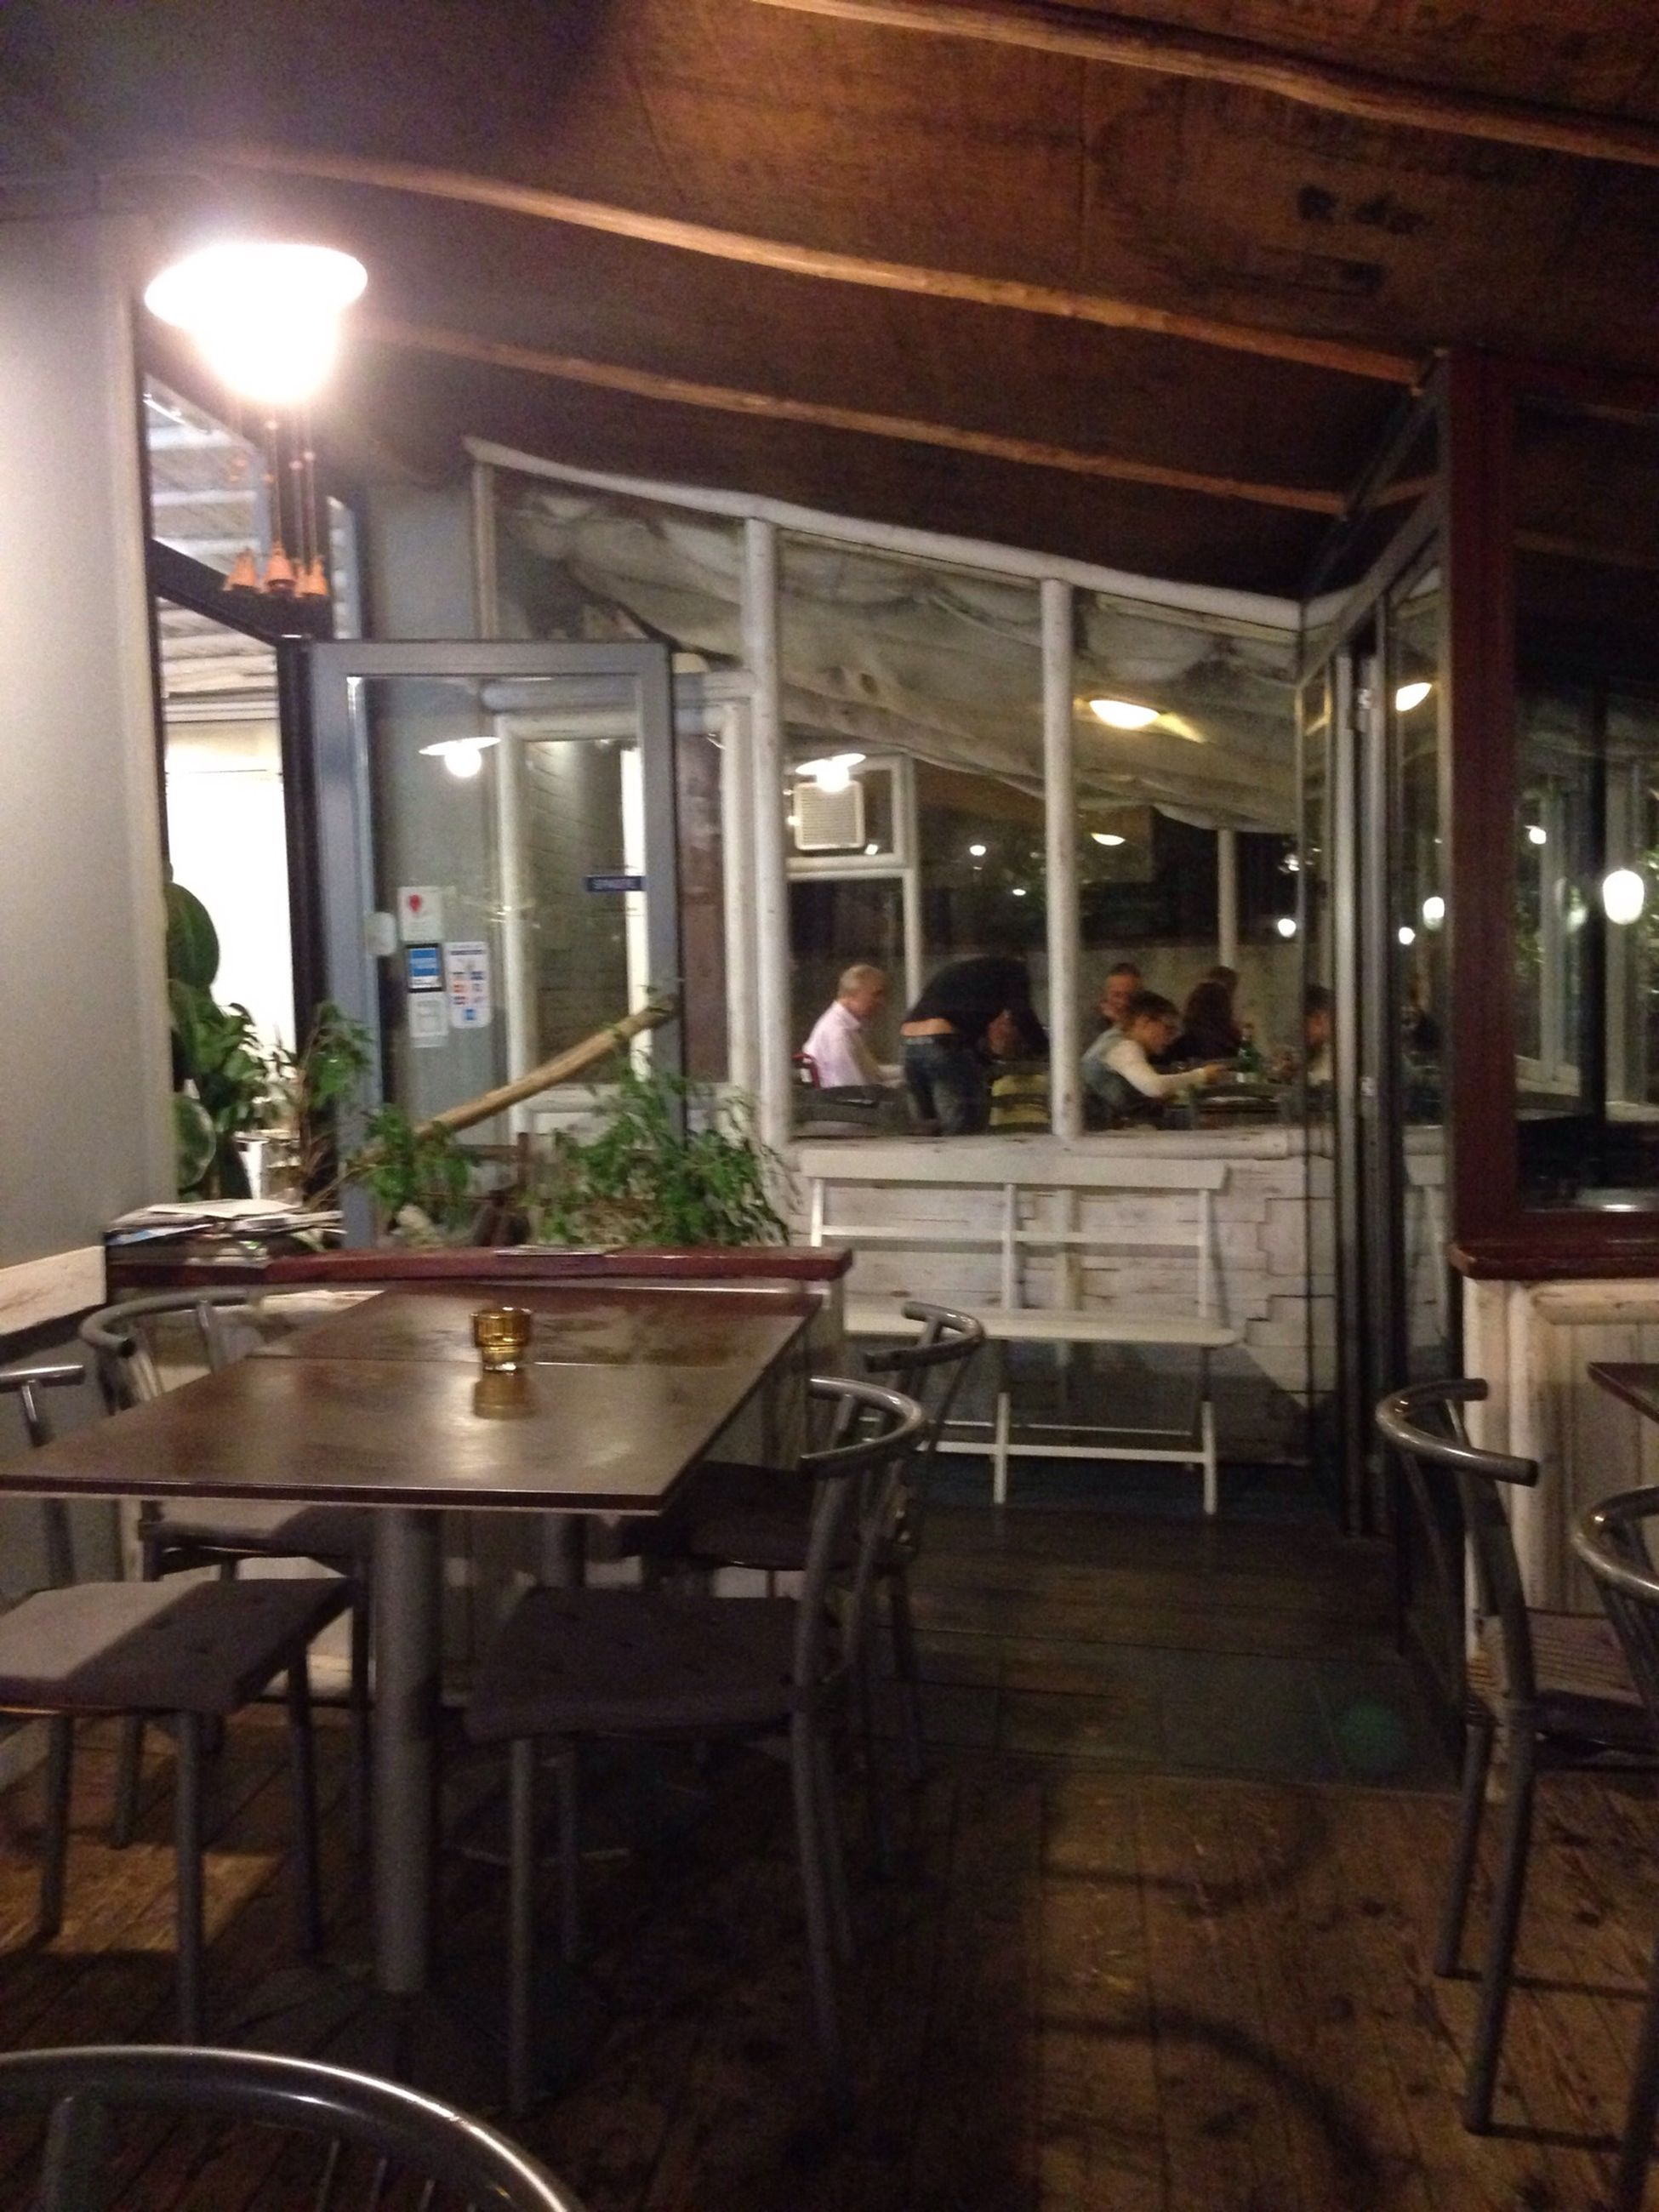 indoors, table, sitting, restaurant, lifestyles, chair, leisure activity, men, person, food and drink, window, glass - material, cafe, sidewalk cafe, casual clothing, dining table, home interior